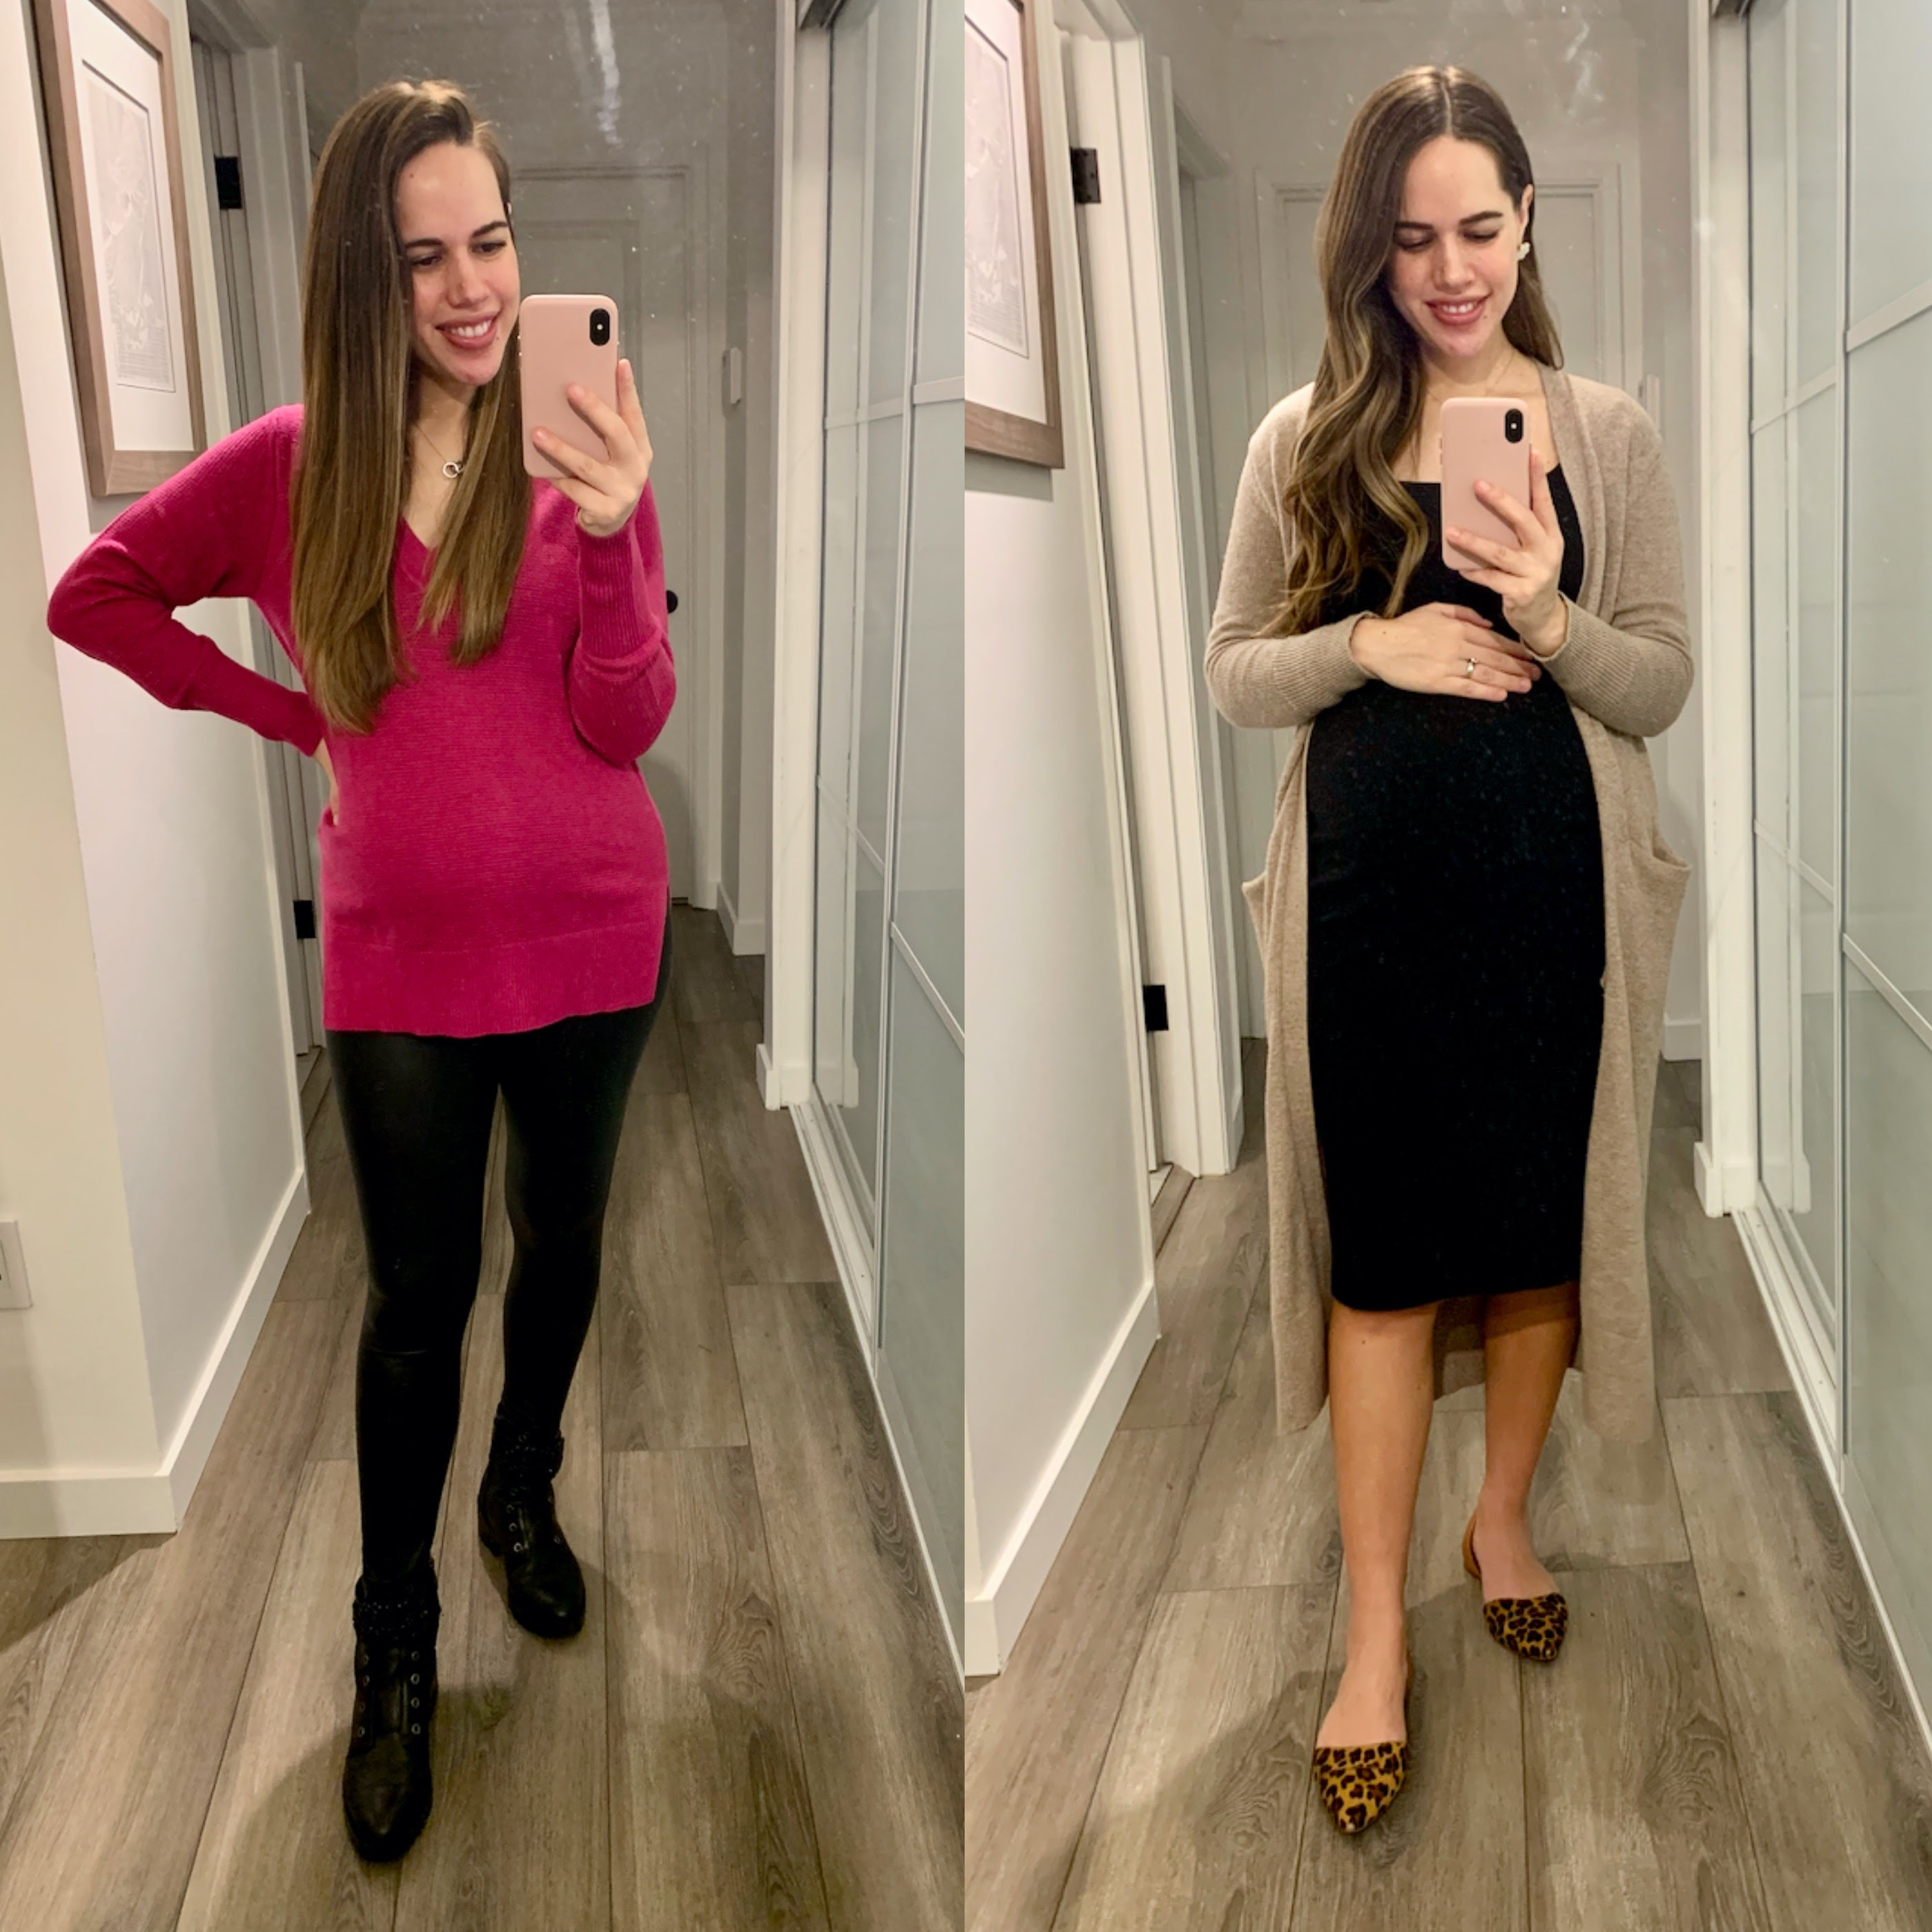 Jules in Flats - What I Wore to Work in January (Business Casual Workwear on a Budget) Week 4